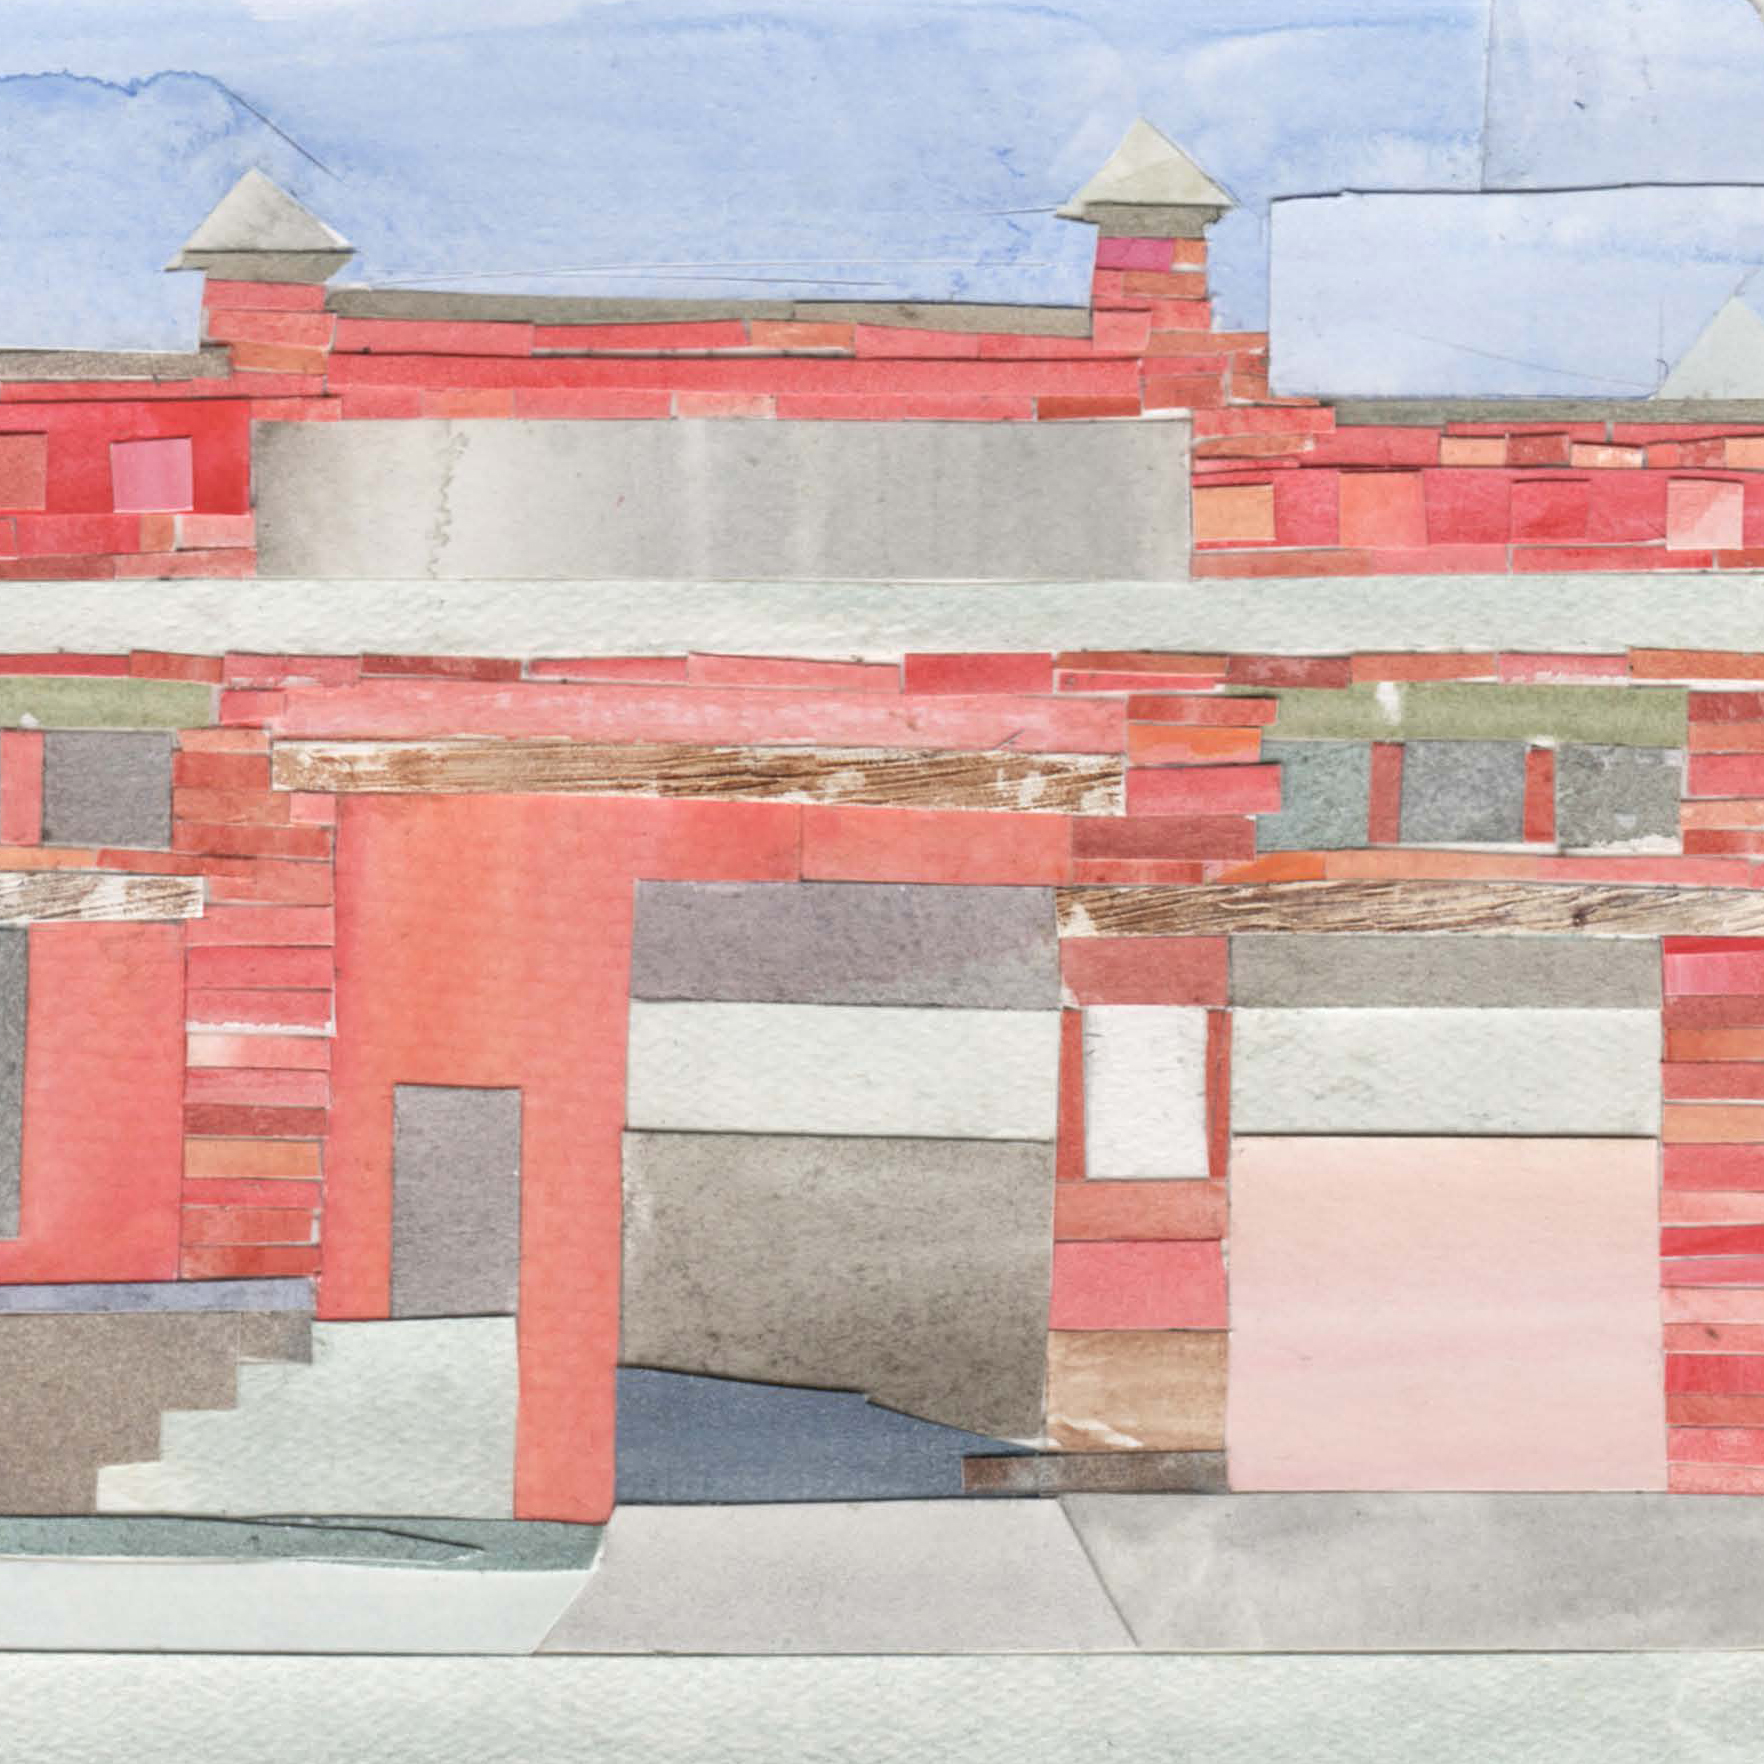 Leftovers: The Last Streetcar Sites, 2018  I spend 2018 working in the archives of the Baltimore Streetcar Museum, seeking out the remaining locations of various sites pertaining to the now obliterated transit system. These 39 watercolor collages chronicle the only locations that remain today.